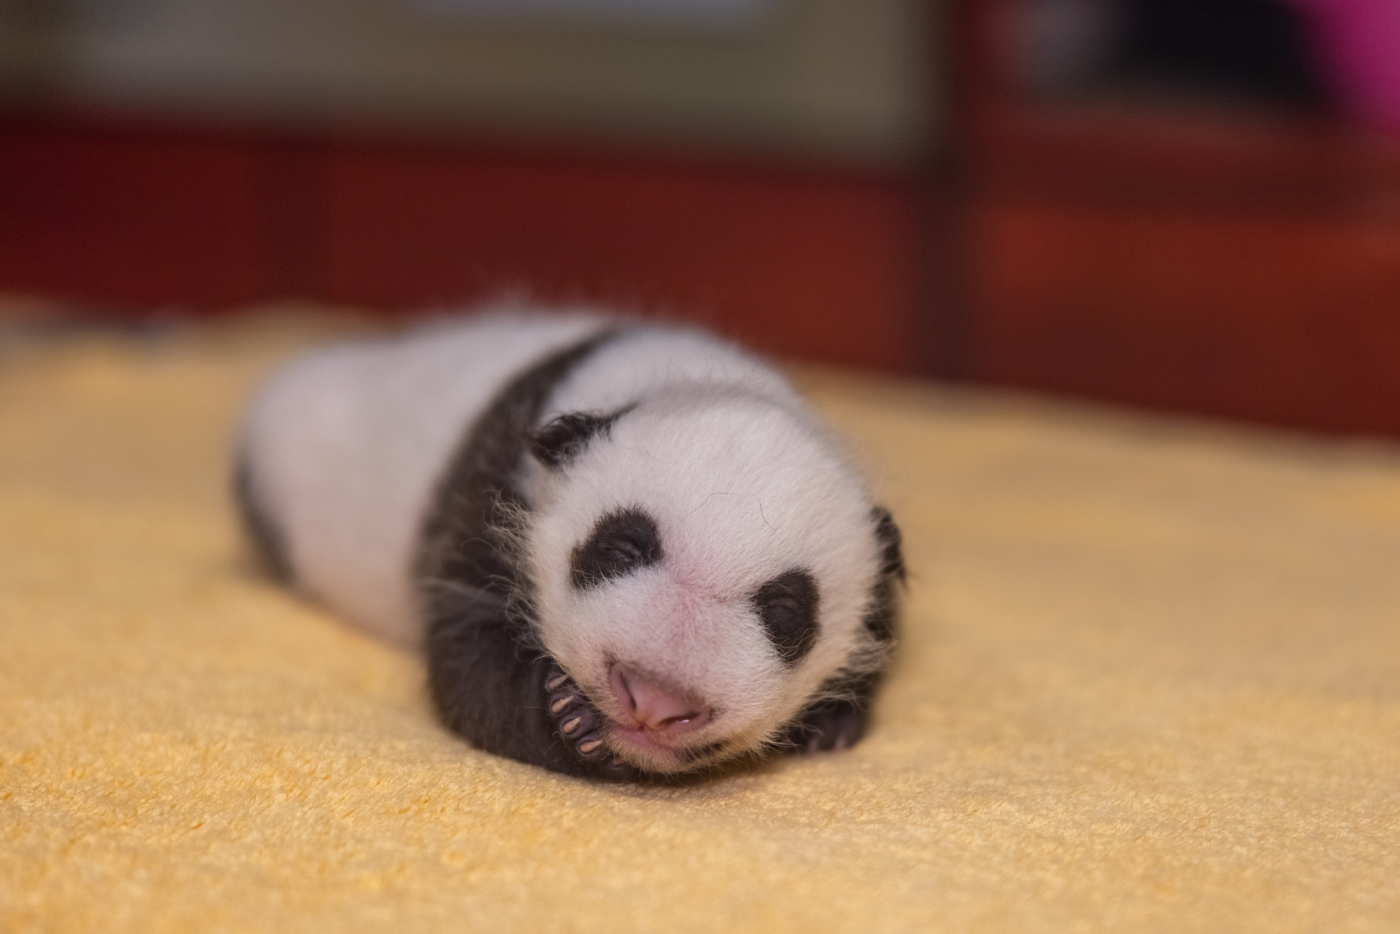 The Smithsonian National Zoo's update on its one-month-old panda cub is maximum adorableness.